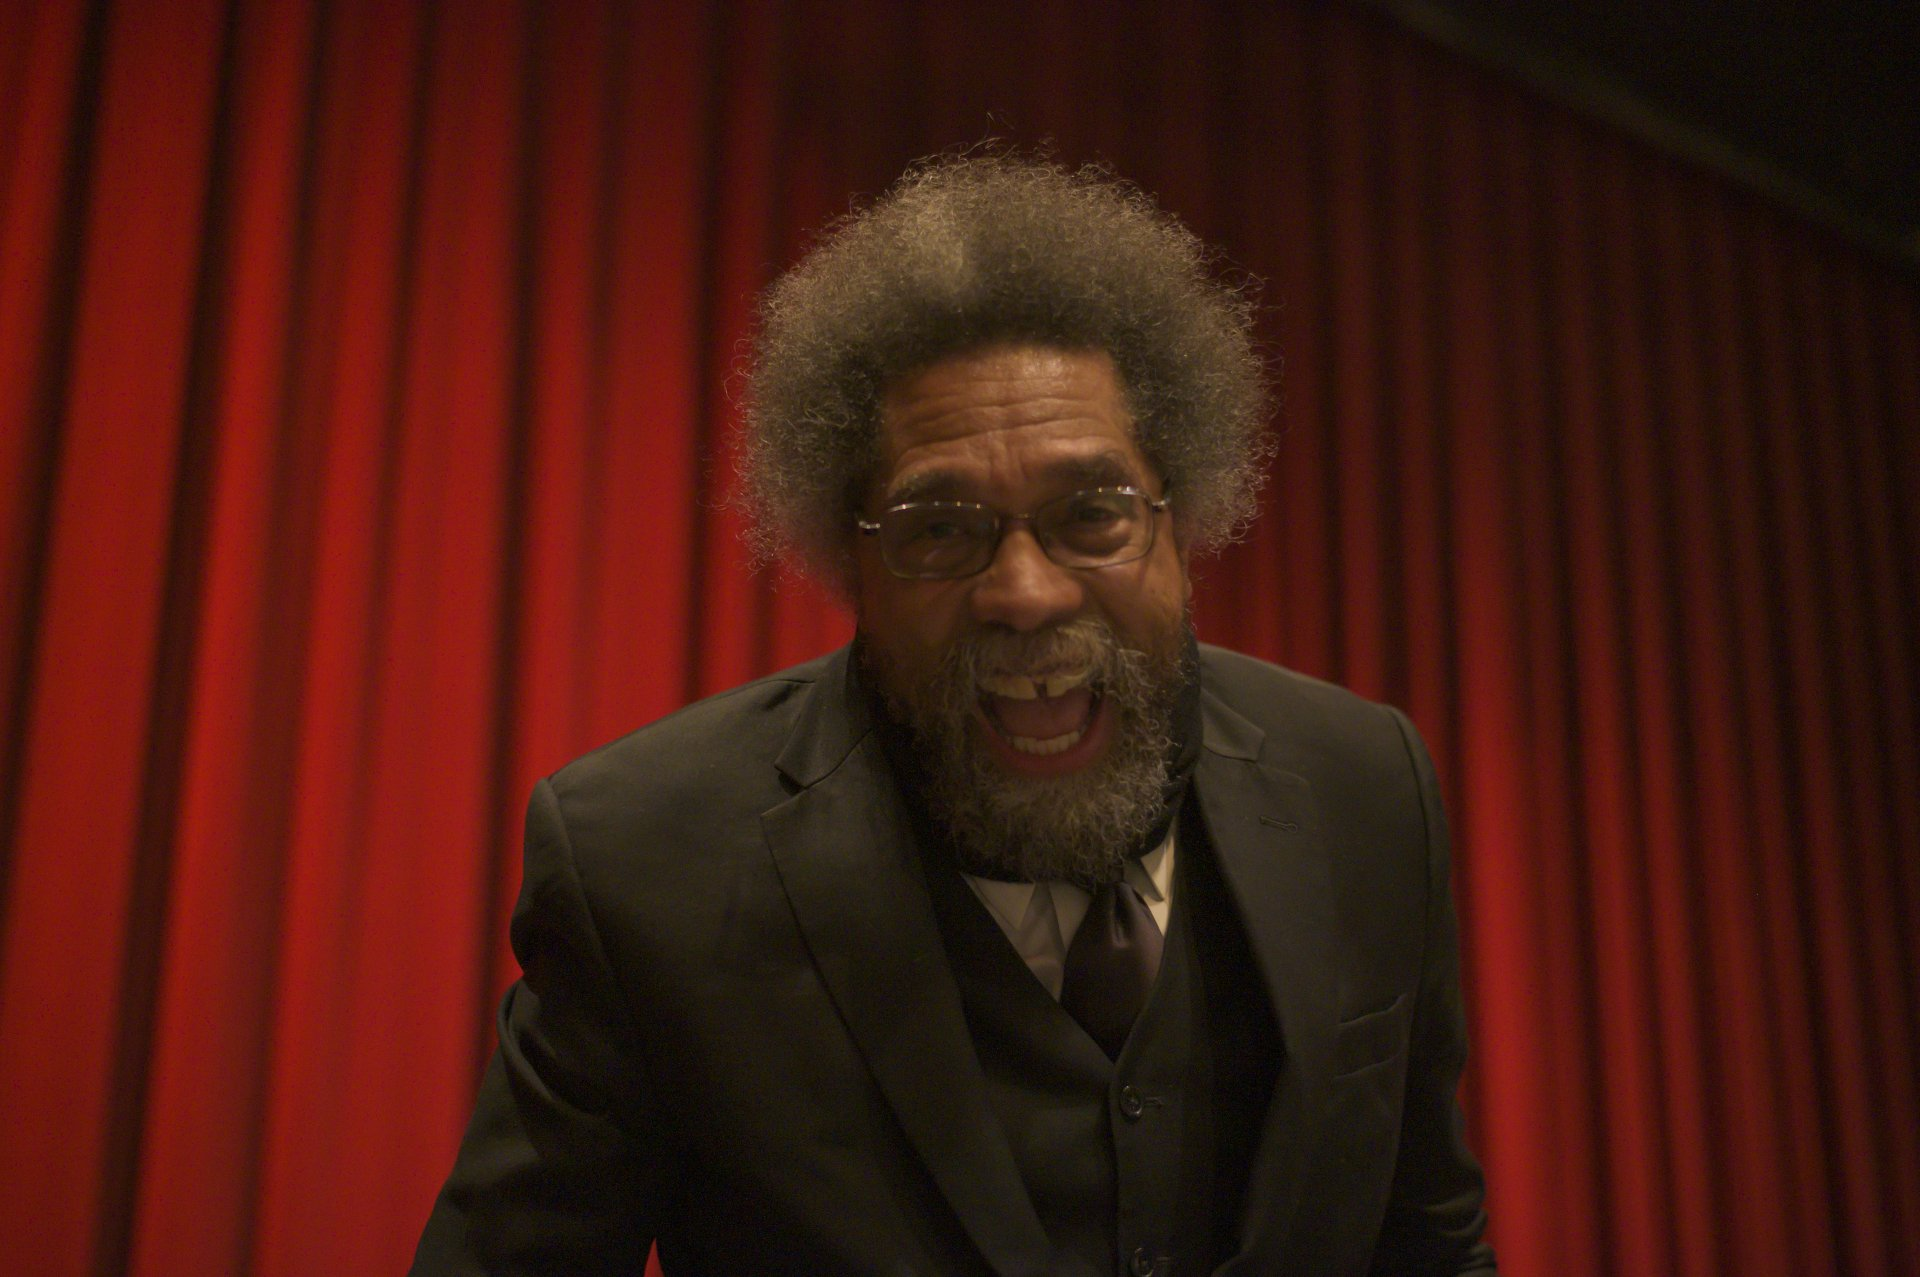 Dr. Cornel West smiles on stage after his lecture in the John Van Duzer Theatre on Feb. 7. | Photo by Benjamin Zawilski